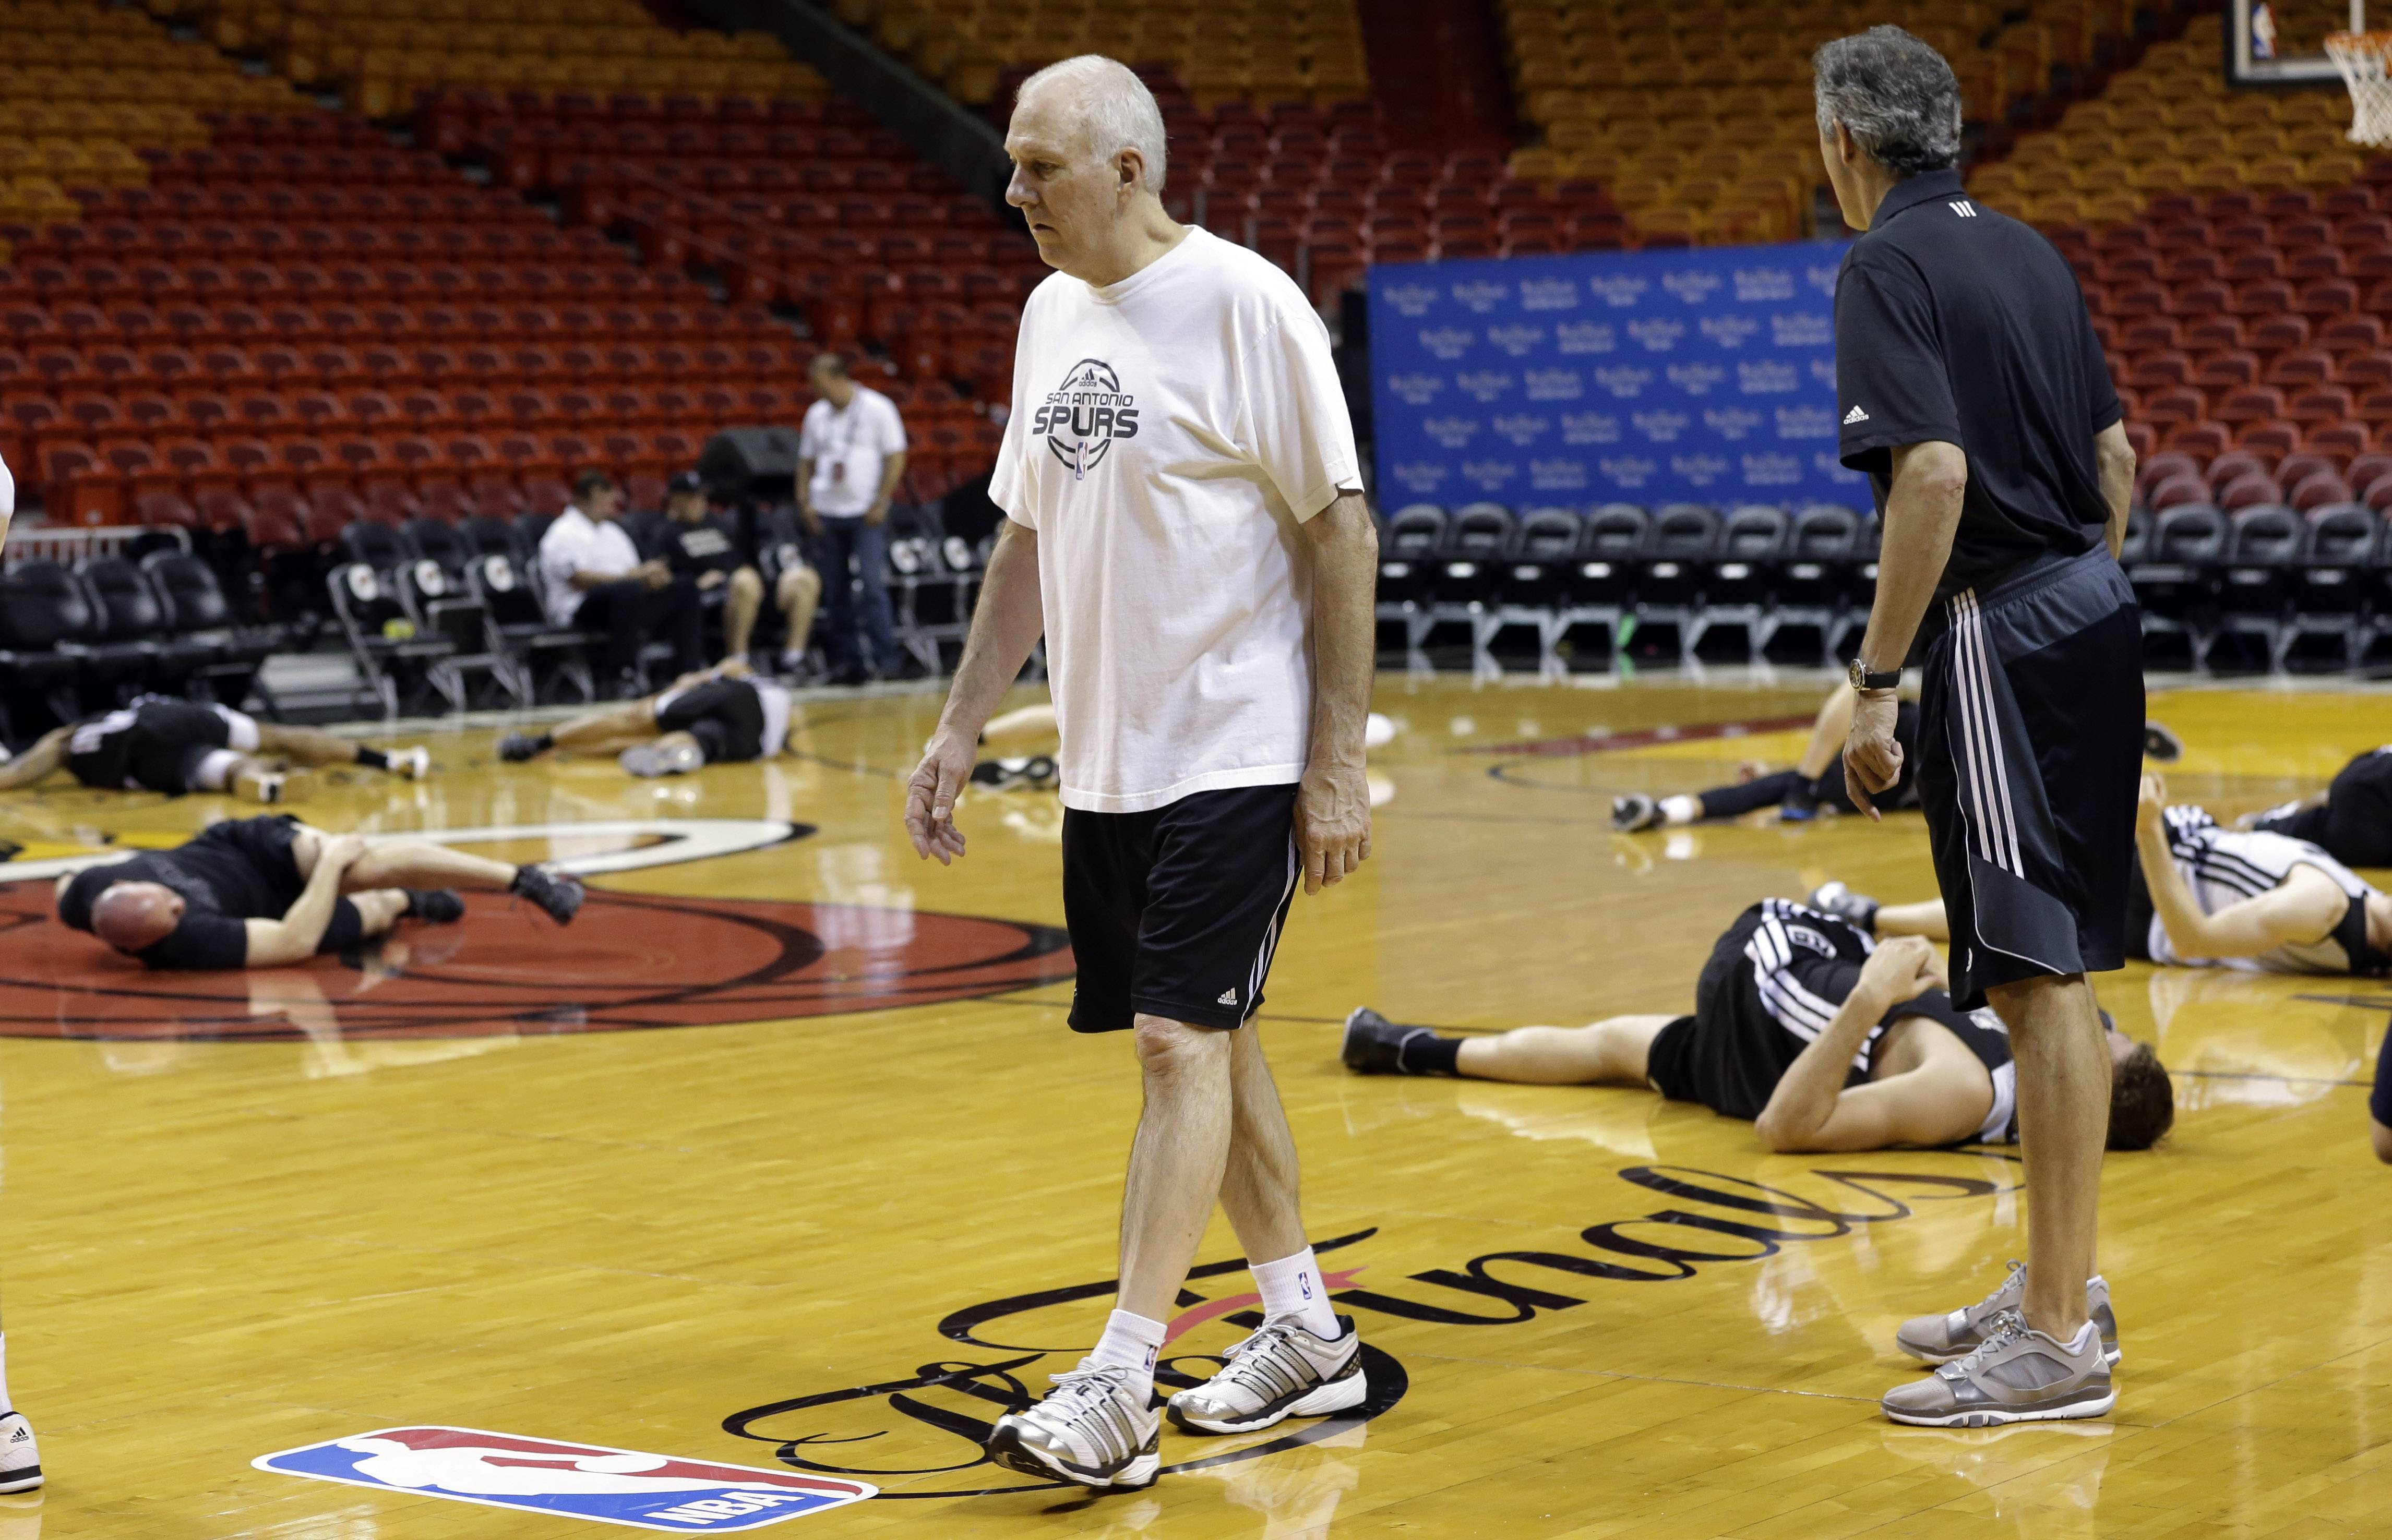 San Antonio Spurs head coach Gregg Popovich, left, watches as players stretch during basketball practice Wednesday at the NBA Finals in Miami. The Spurs lead the Miami Heat 2-1 in the best-of-seven games series.